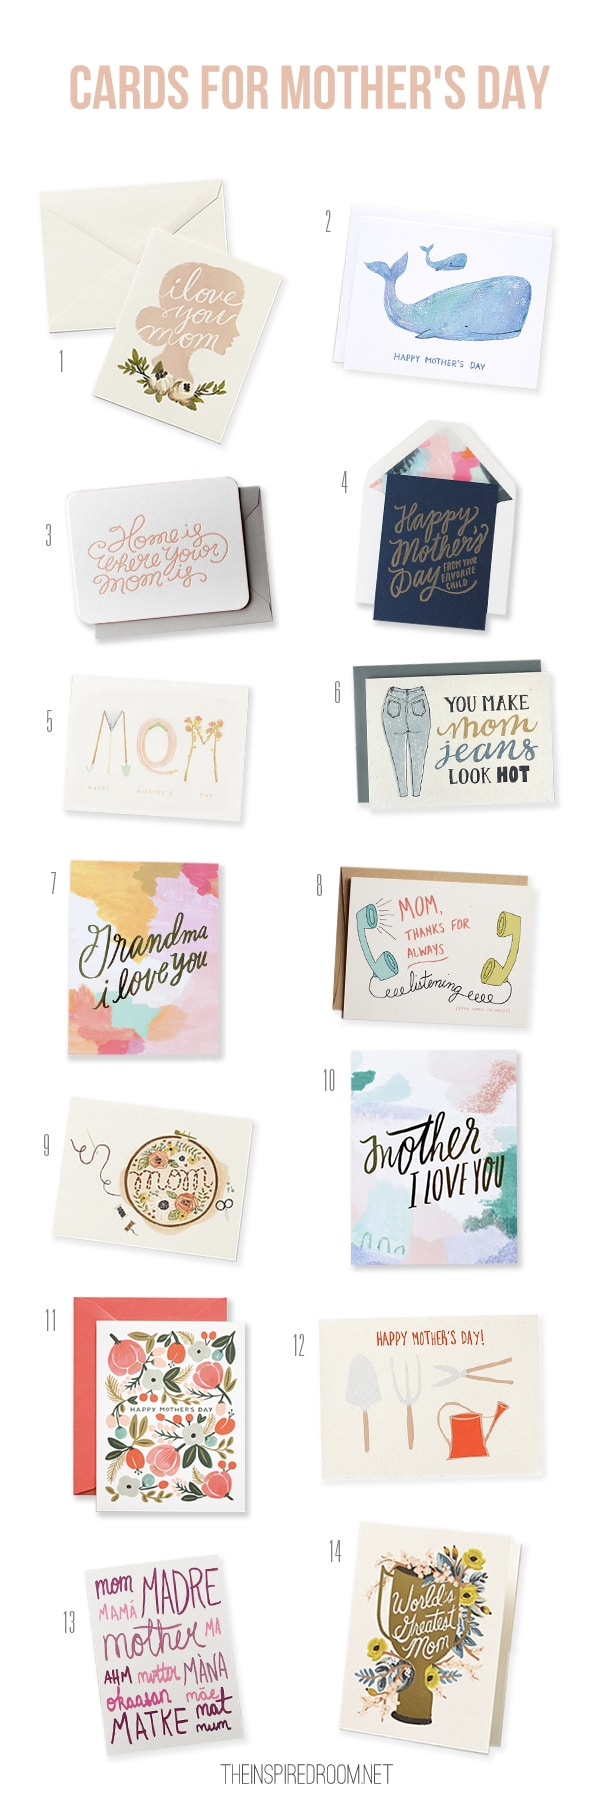 Cute Cards for Mother's Day